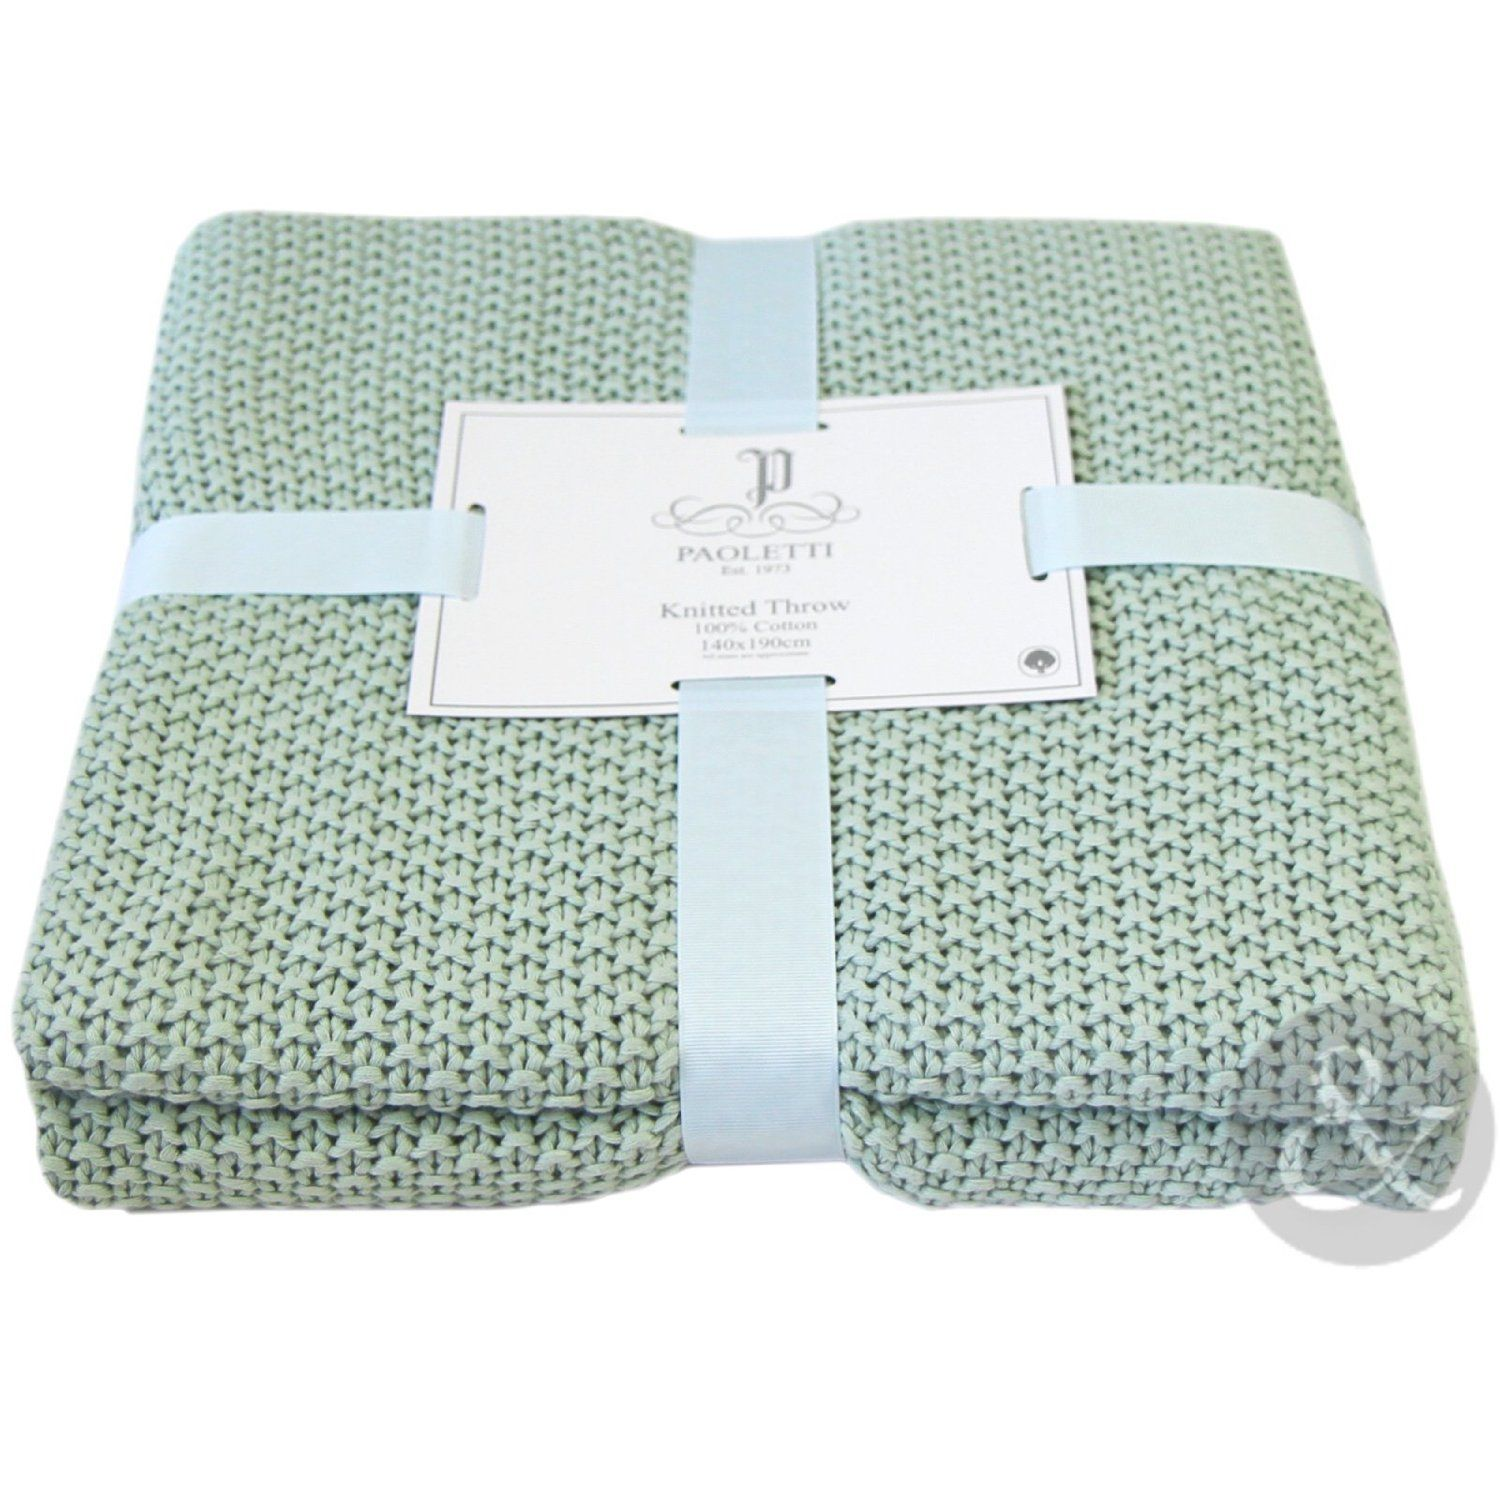 100 Cotton Knitted Throw Over Luxury Soft Bed Blanket Sofa Throws 140 X 190cm Eau De Nil Green 140cm X 190c Cotton Sofa Throws Sofa Throw Knitted Throws